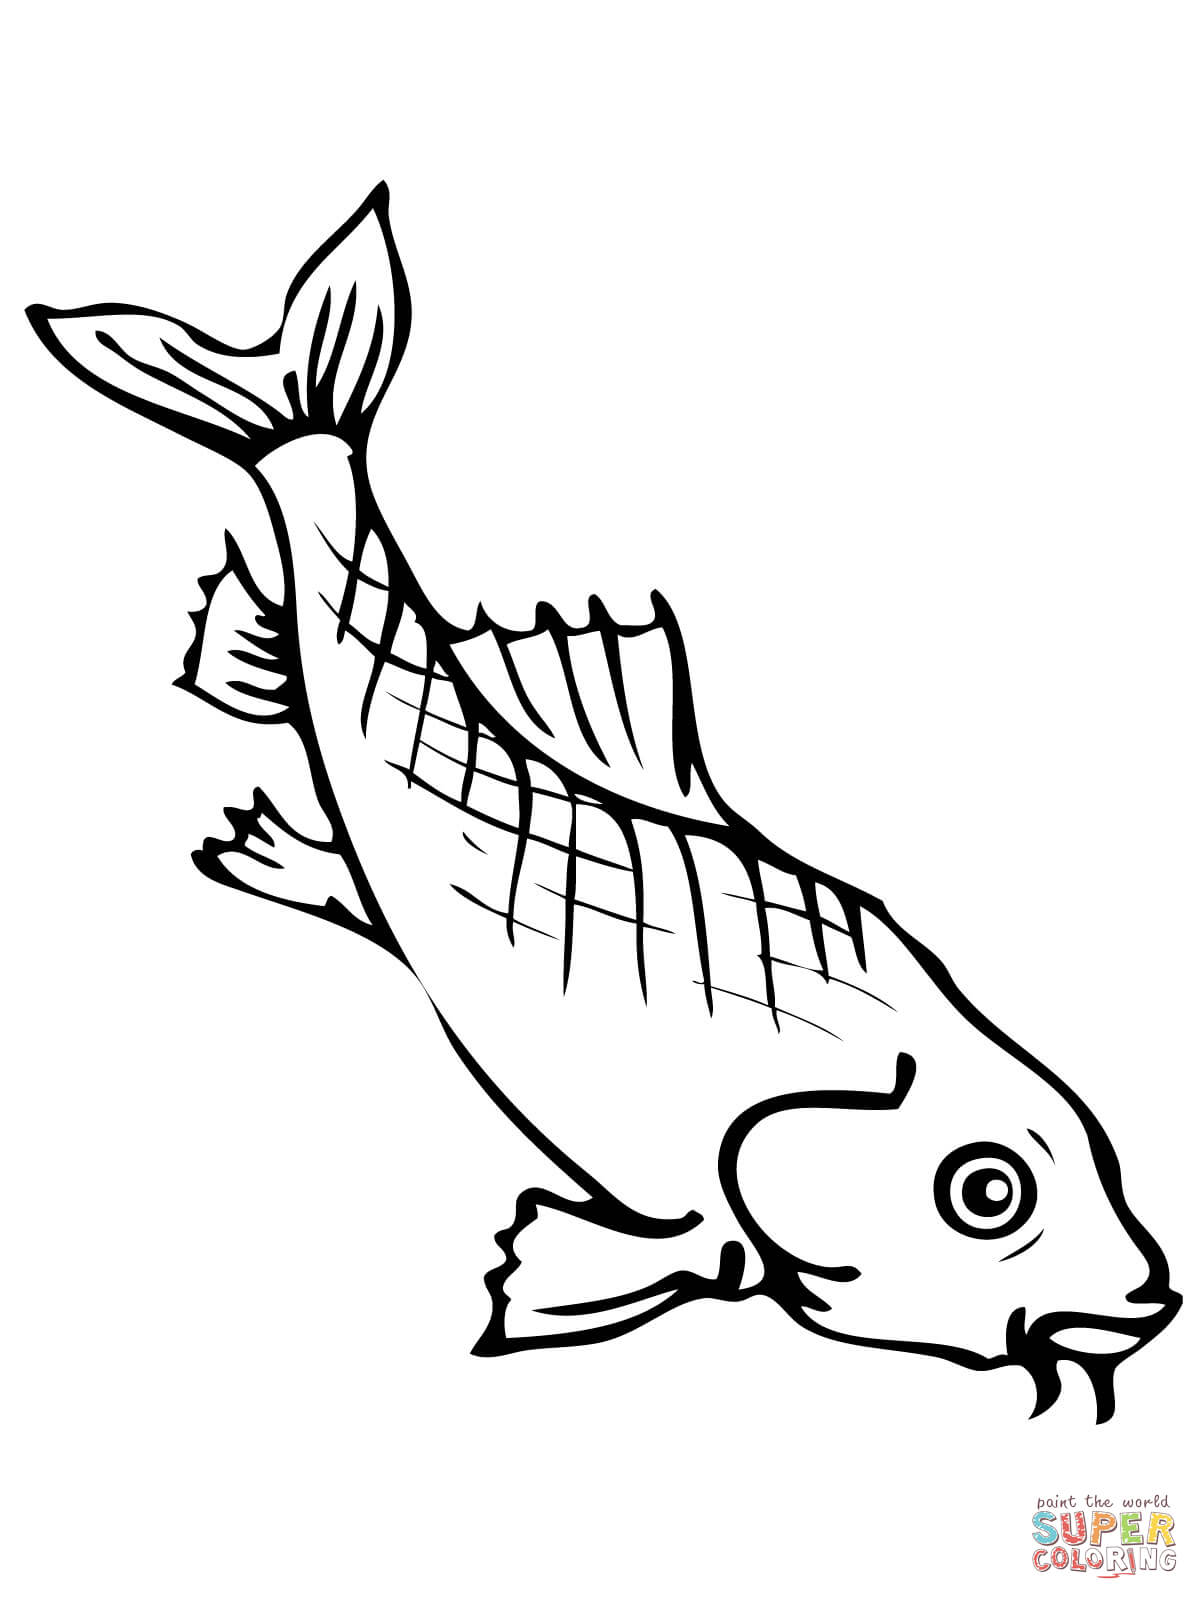 Coloring pages koi fish - Koi Fishes Coloring Page Free Printable Coloring Pages